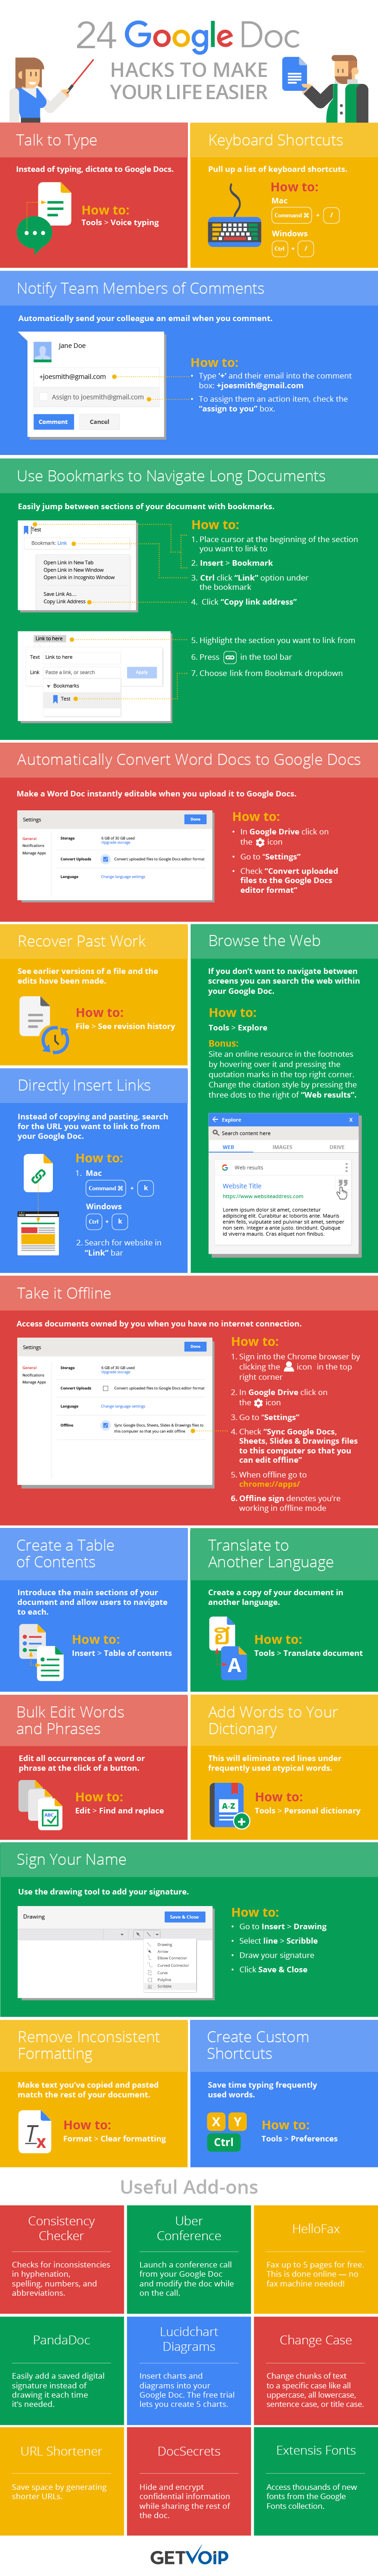 24 Google Doc Hacks to Make Your Life Easier Infographic24 Google Doc Hacks to Make Your Life Easier Infographic